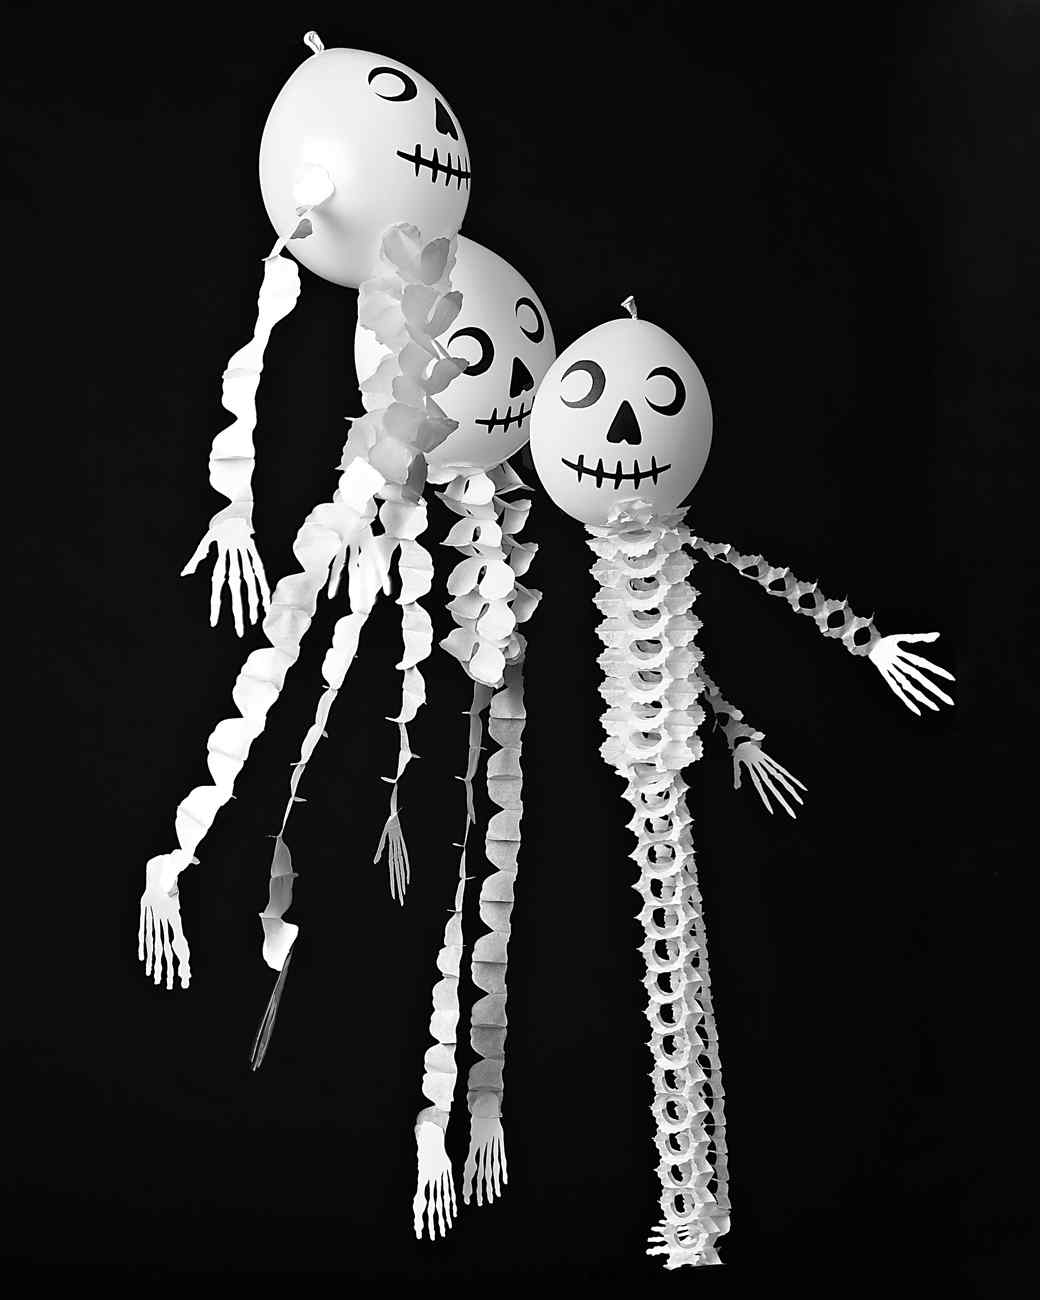 balloon-skeletons-061-md110354.jpg